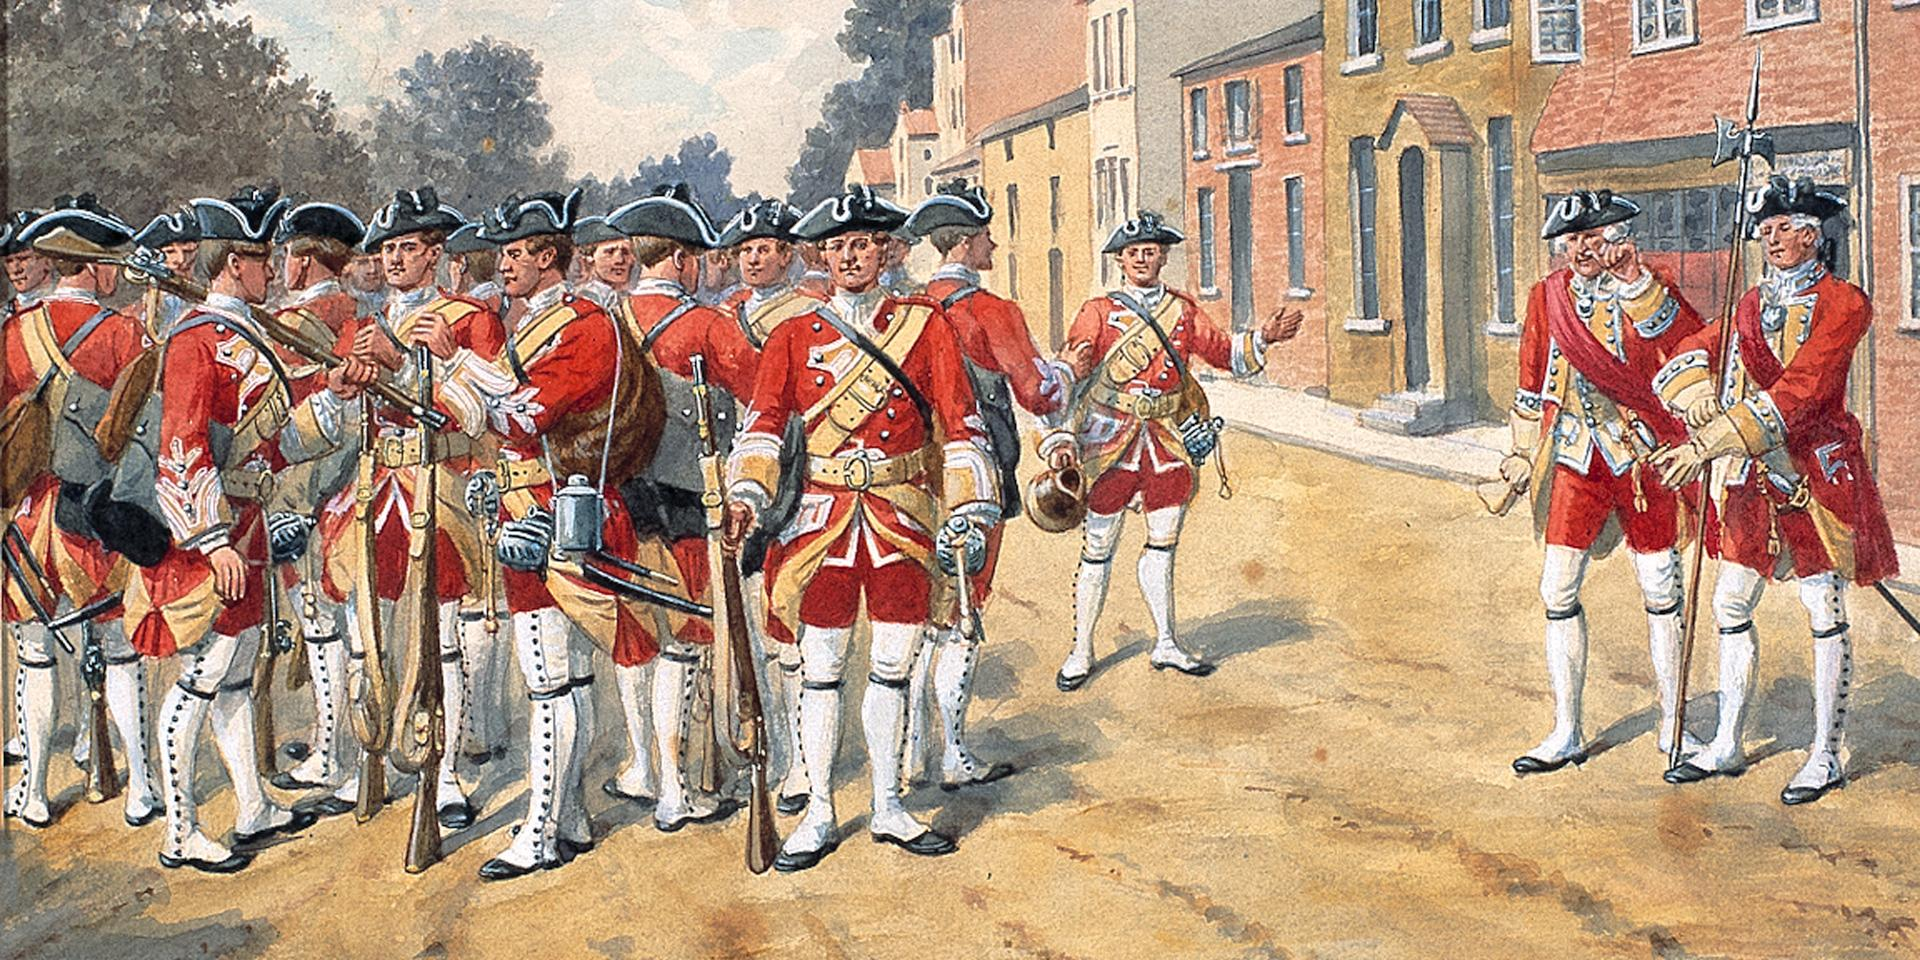 3rd (Kent) Regiment of Foot, 'The Buffs', 1751